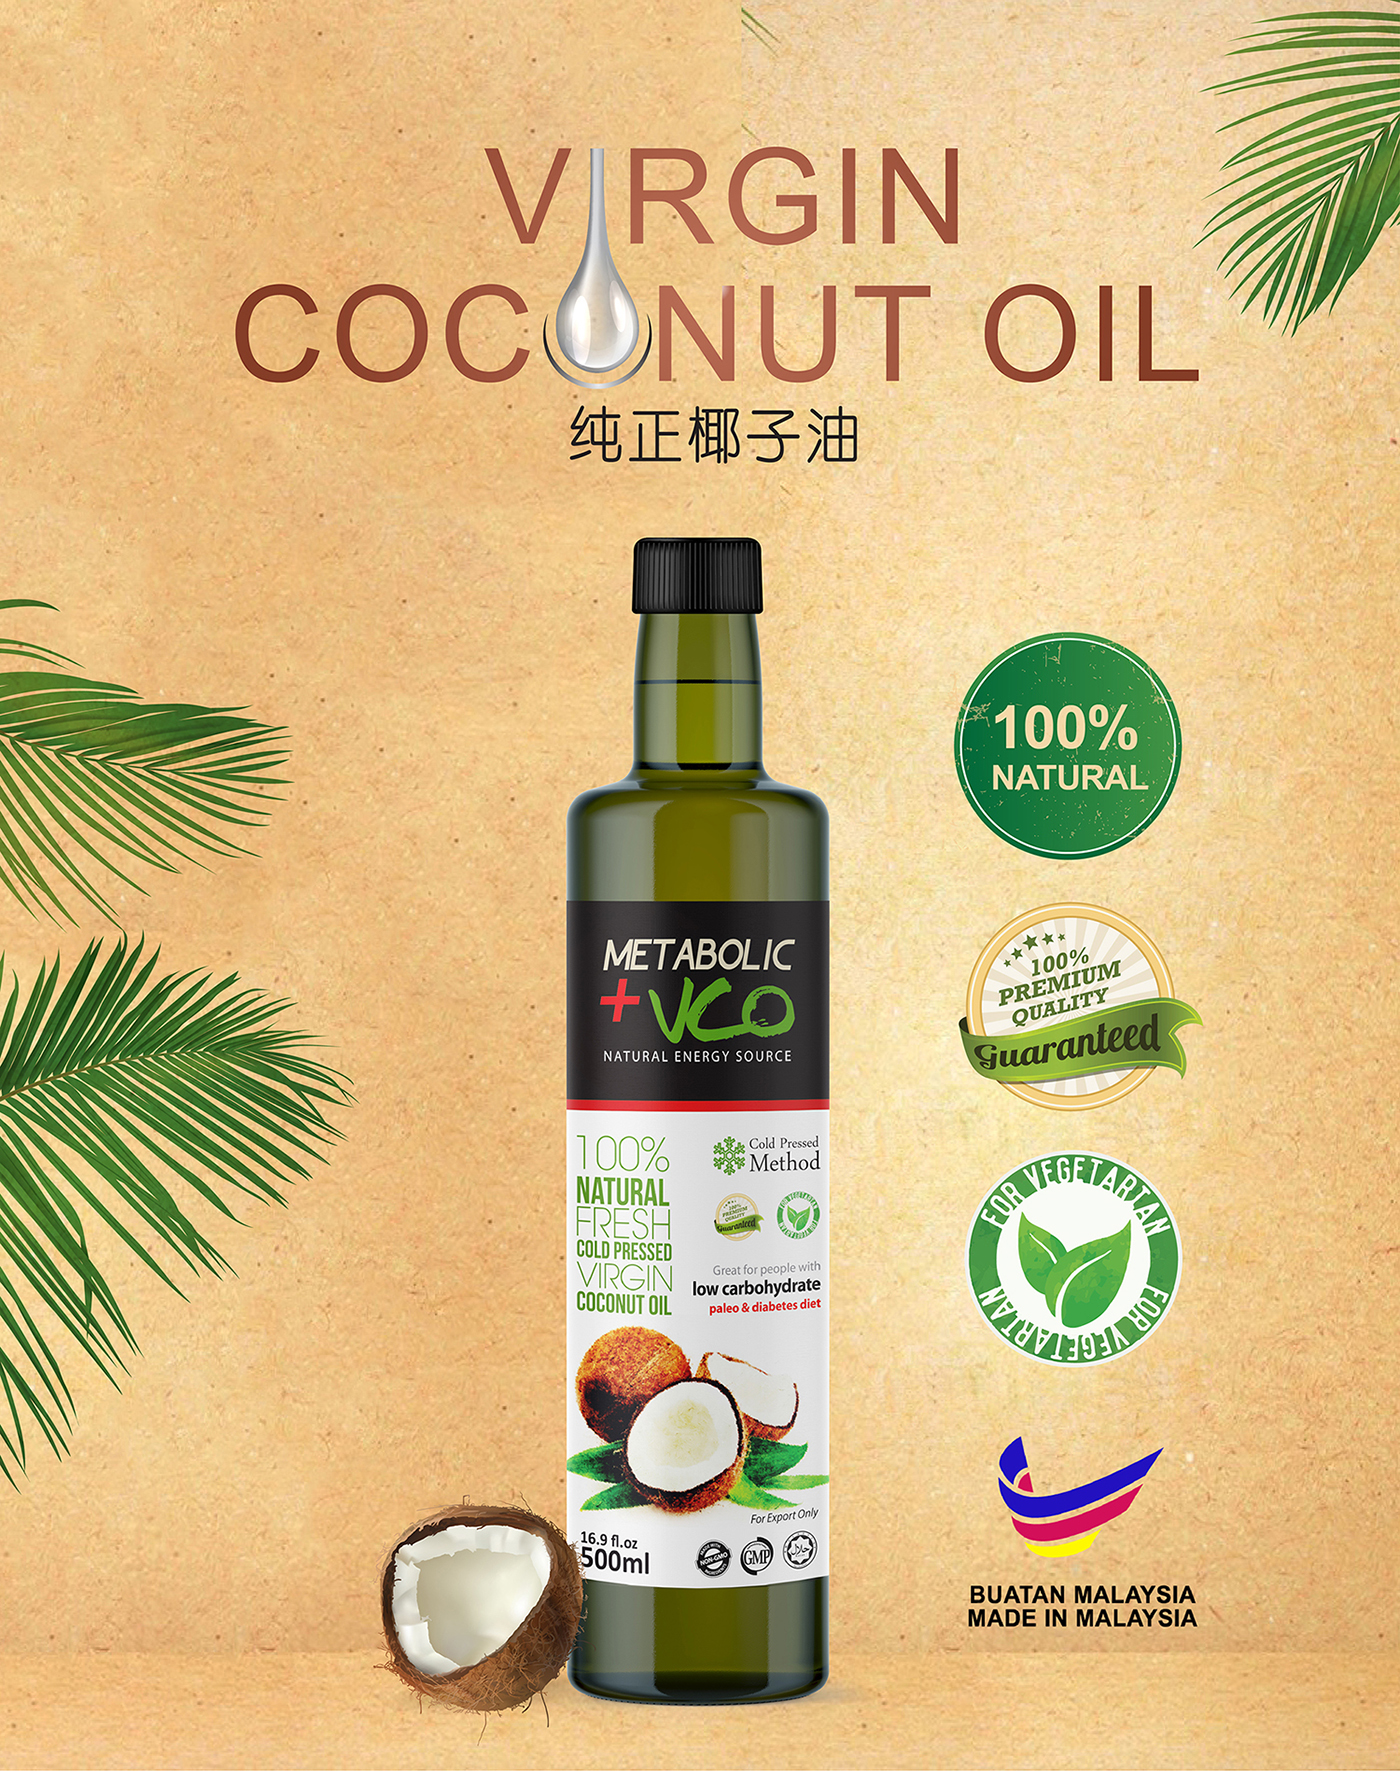 Metabolic + VCO (virgin coconut oil) is healthy oil for whole family.